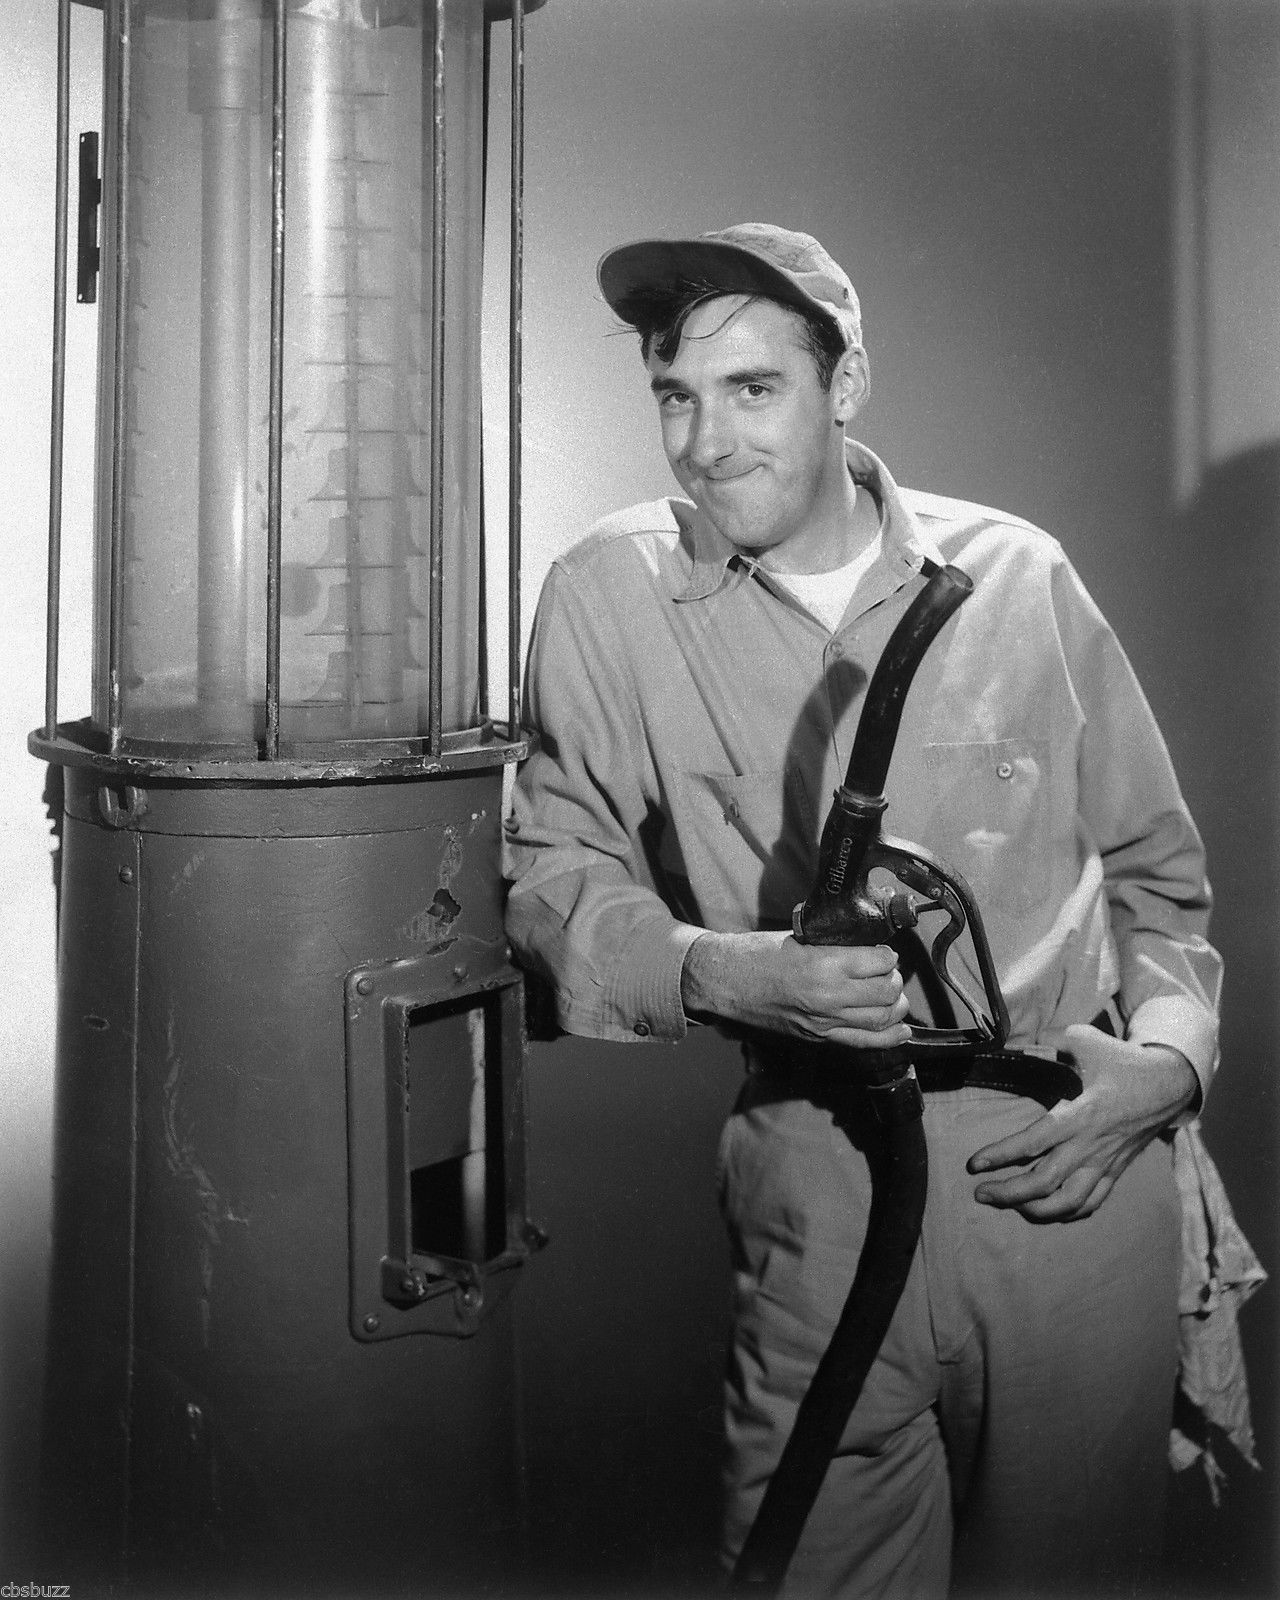 A Gay Wed For Gomer Pyle Star